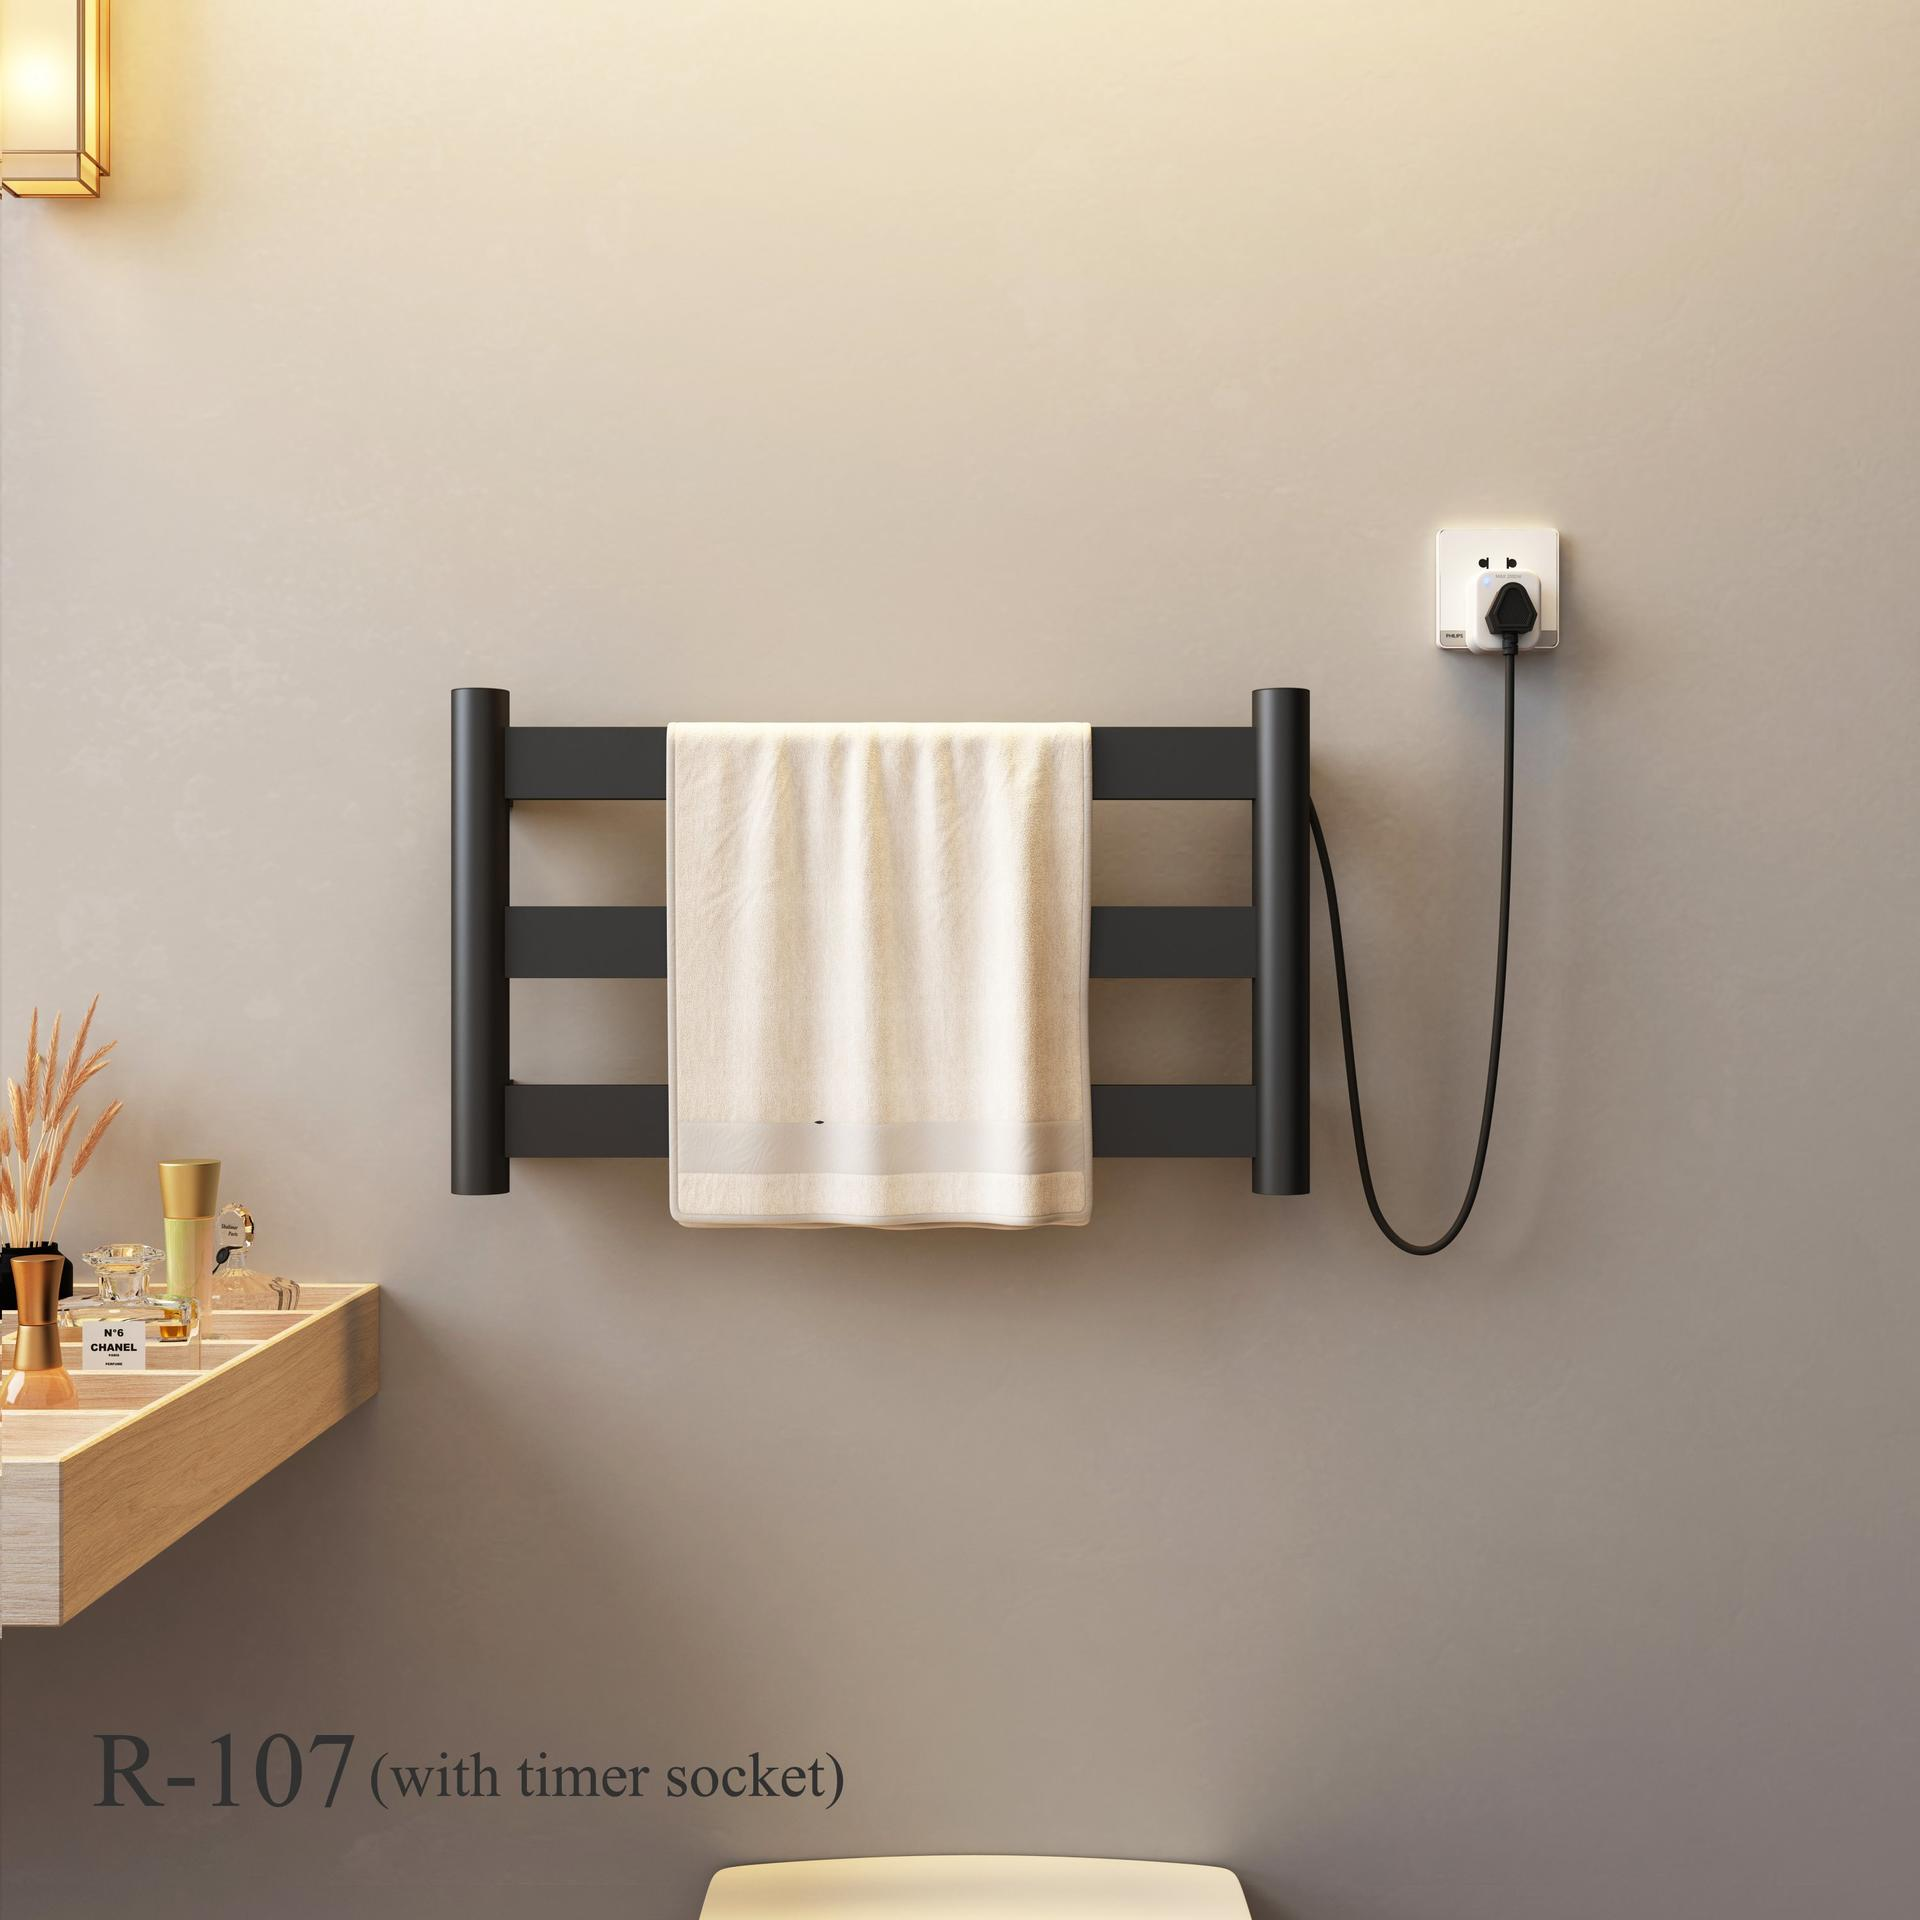 Electric Towel Rack